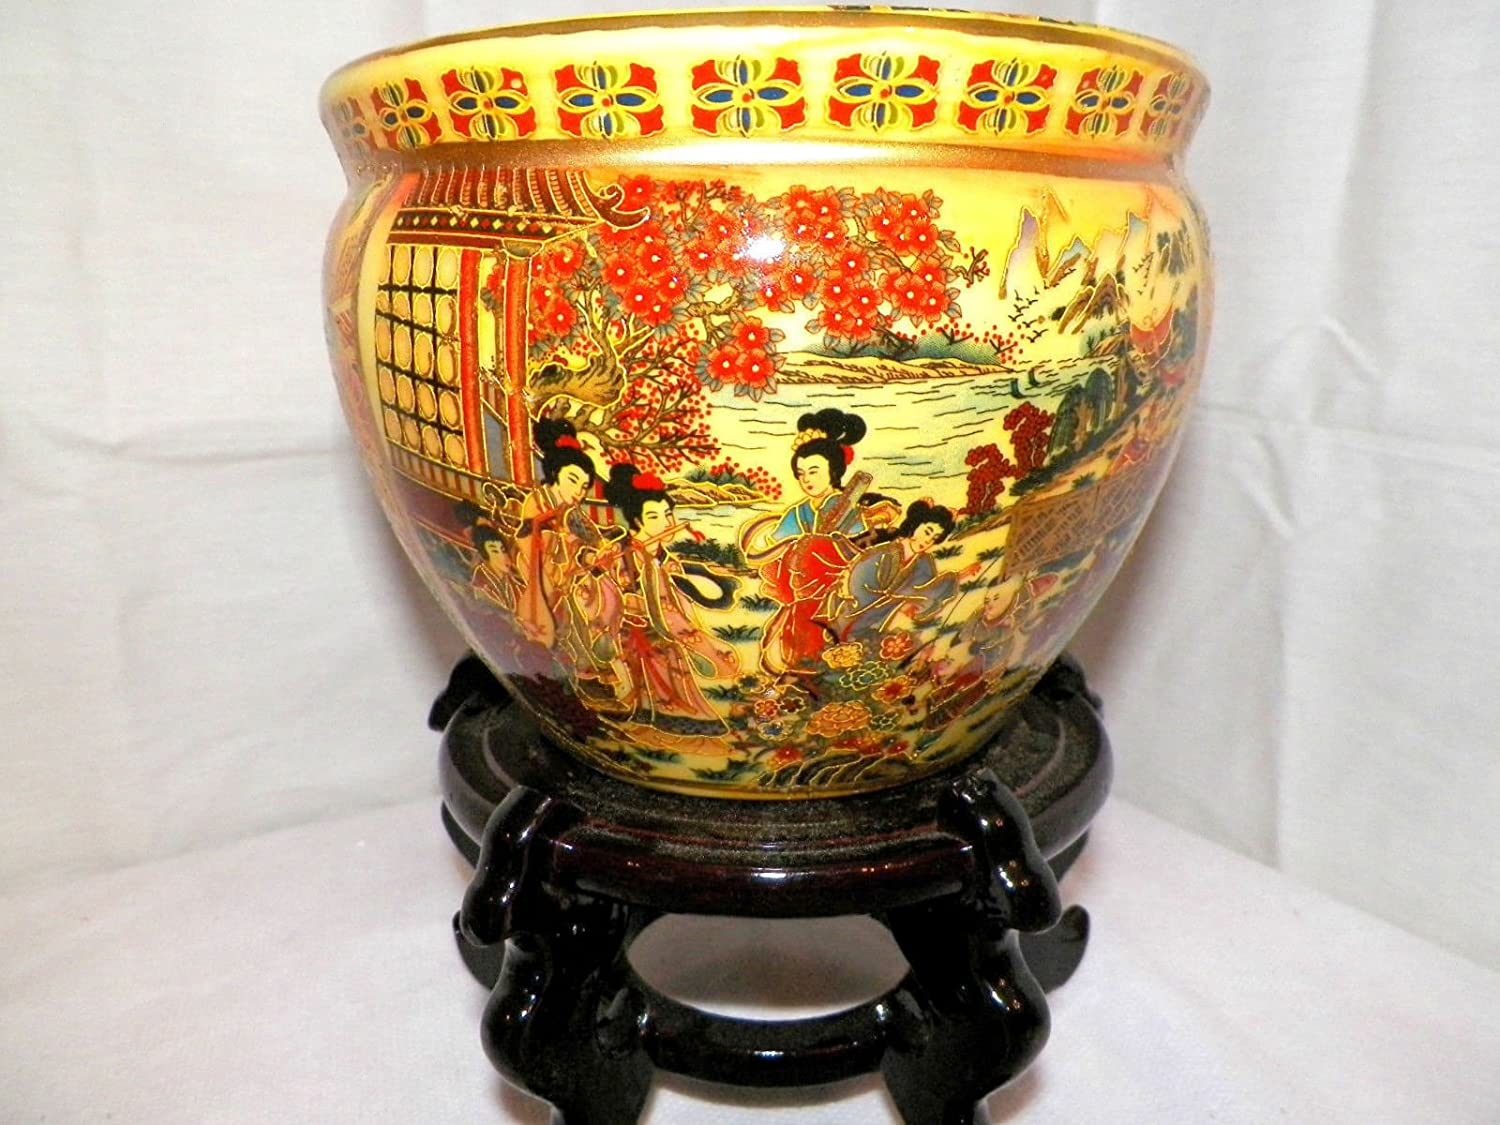 6 Oriental Geisha Playing Music Fish Bowl Jardiniere Planter Plant Pot Satsuma Style with Wooden Stand